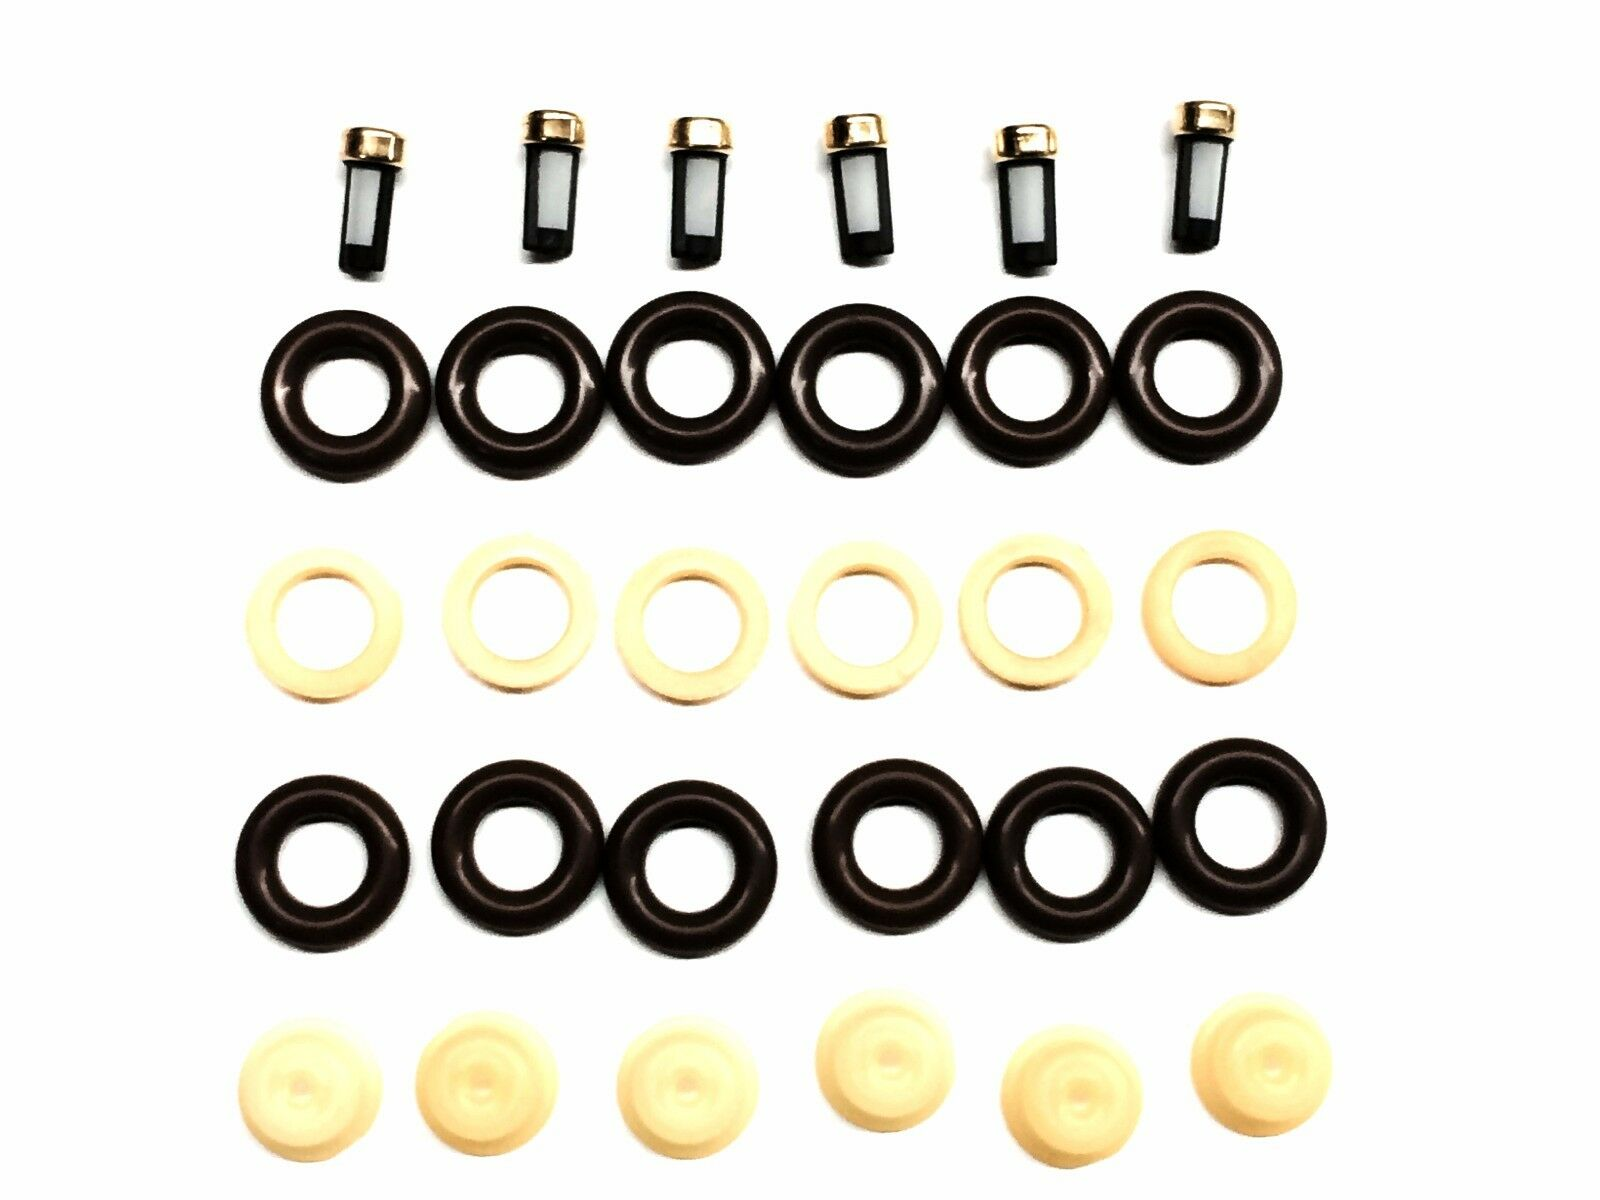 Fuel Injector Repair Kit O Rings Pintle Caps Spacer Filters Gm 38 2007 Monte Carlo Filter 38l 1 Of 2free Shipping